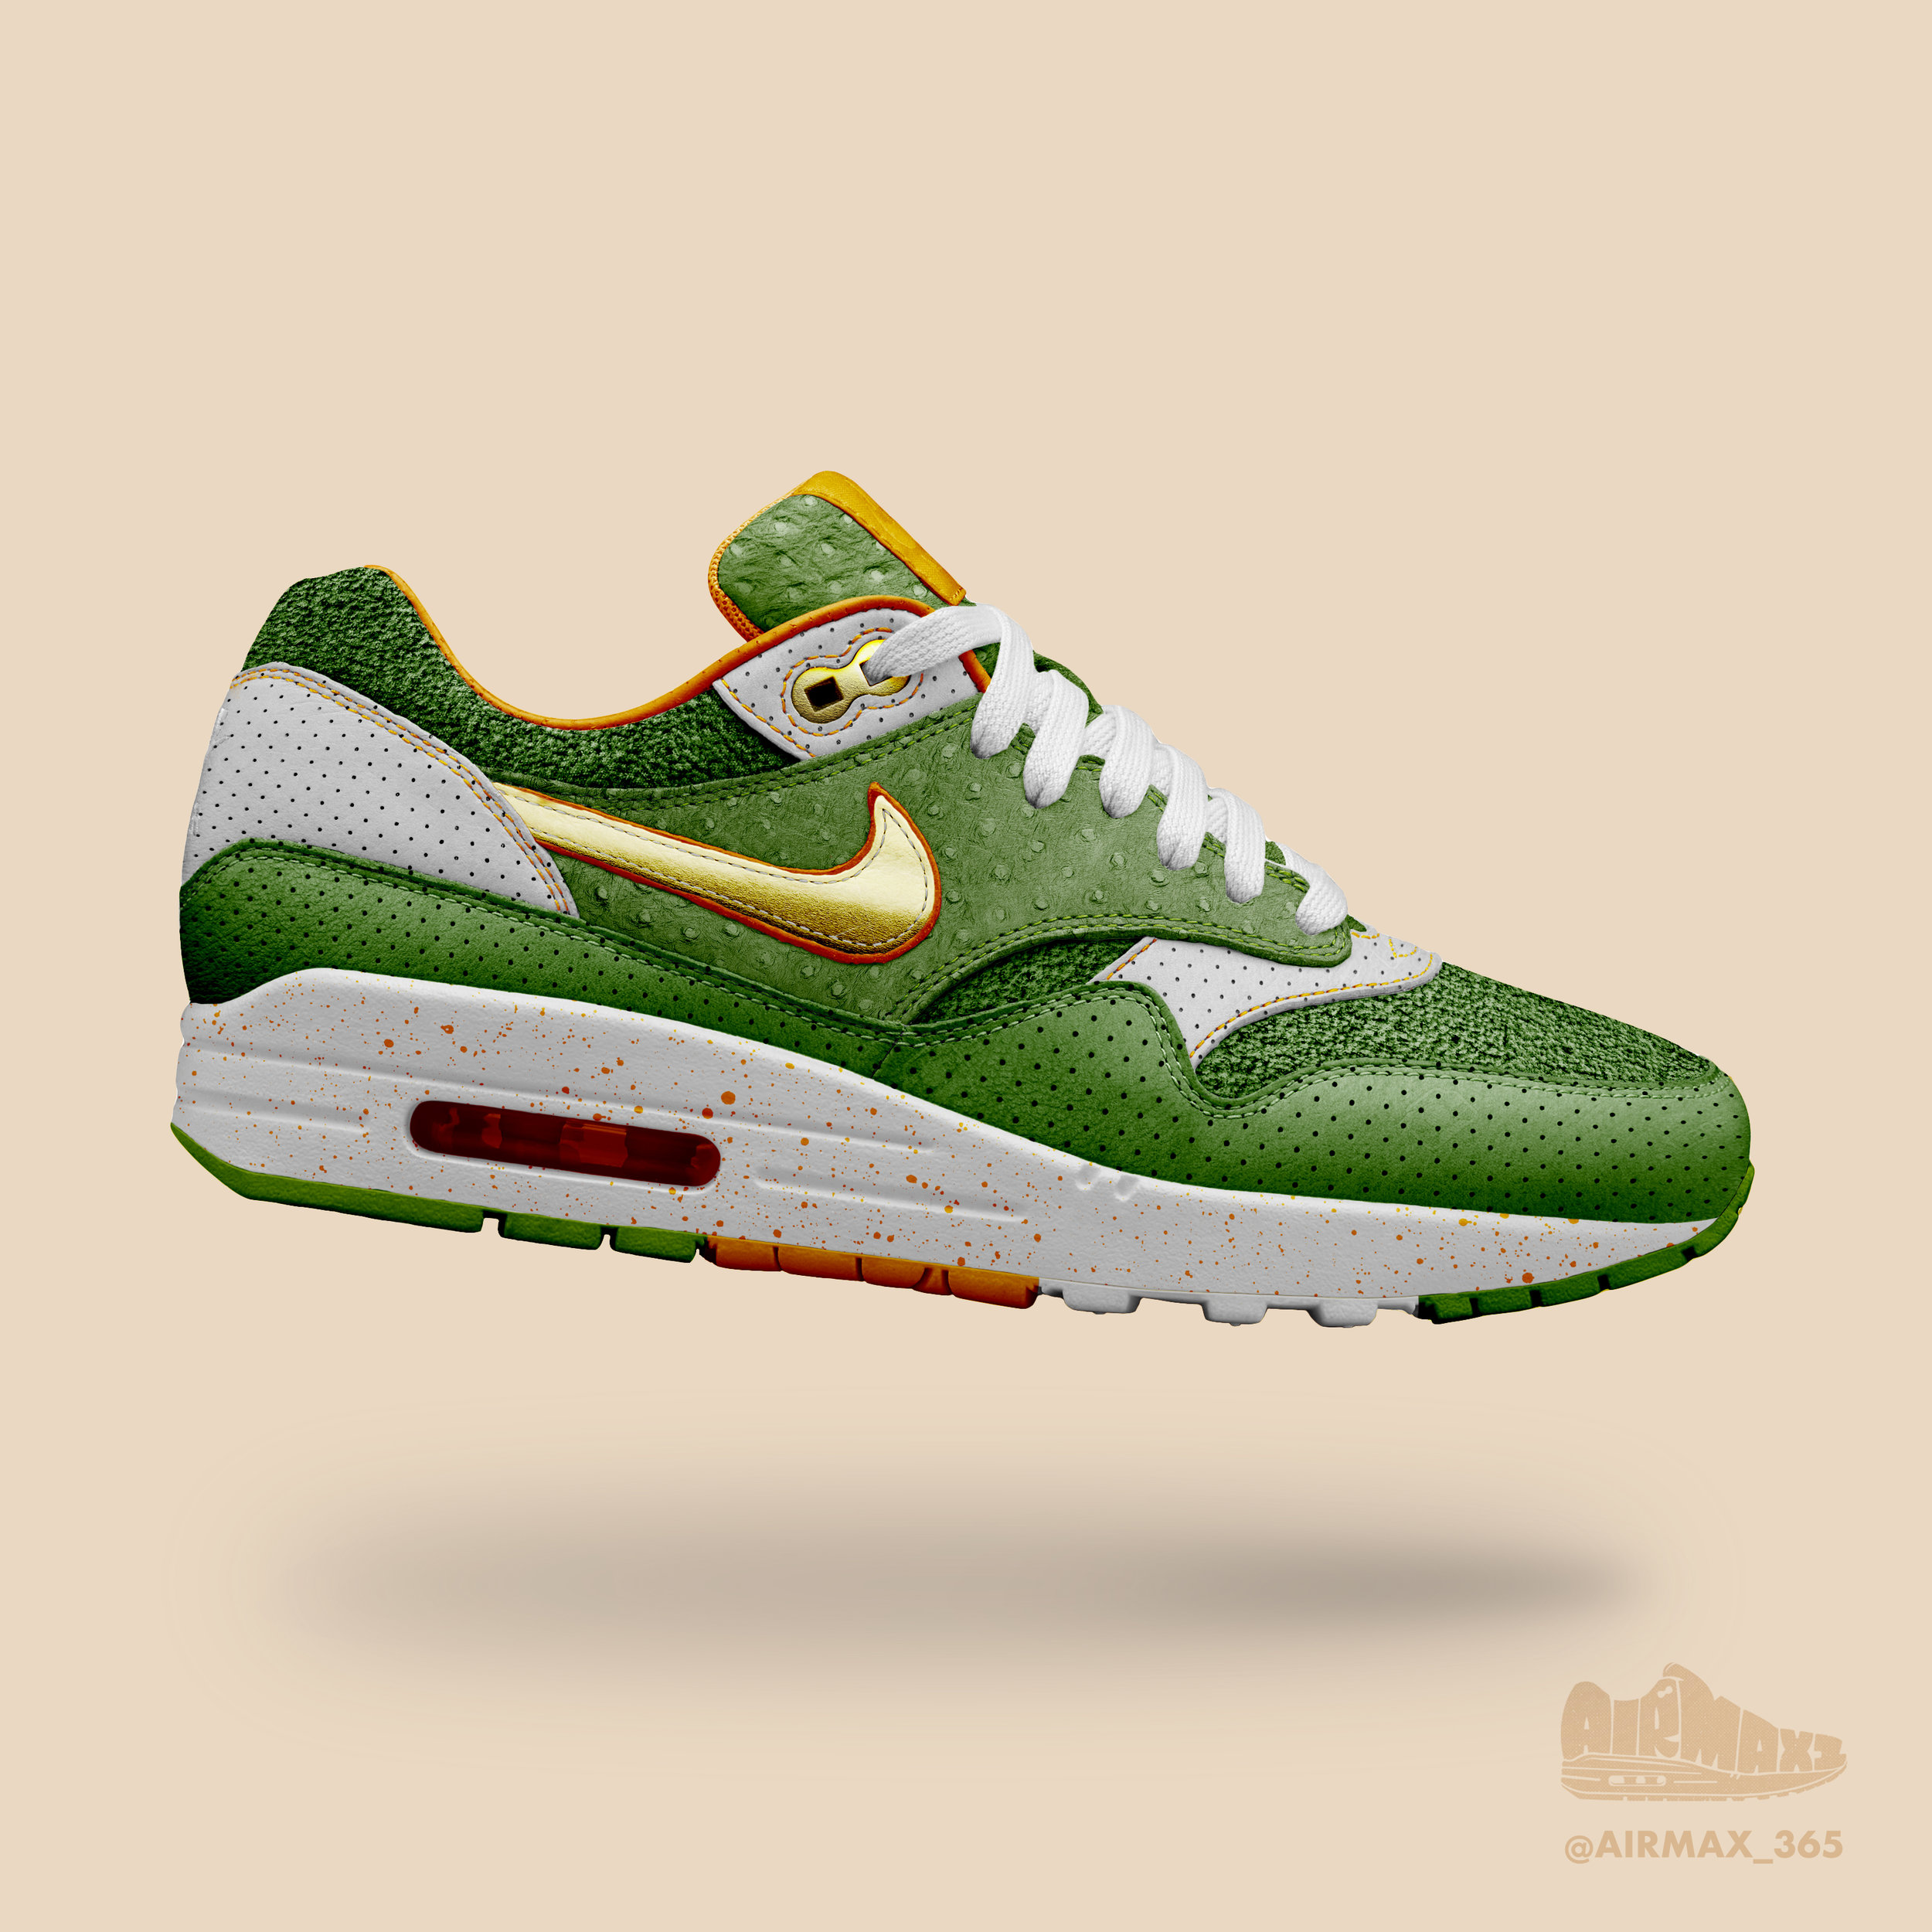 Day 198: Air Max 1 Green Punch